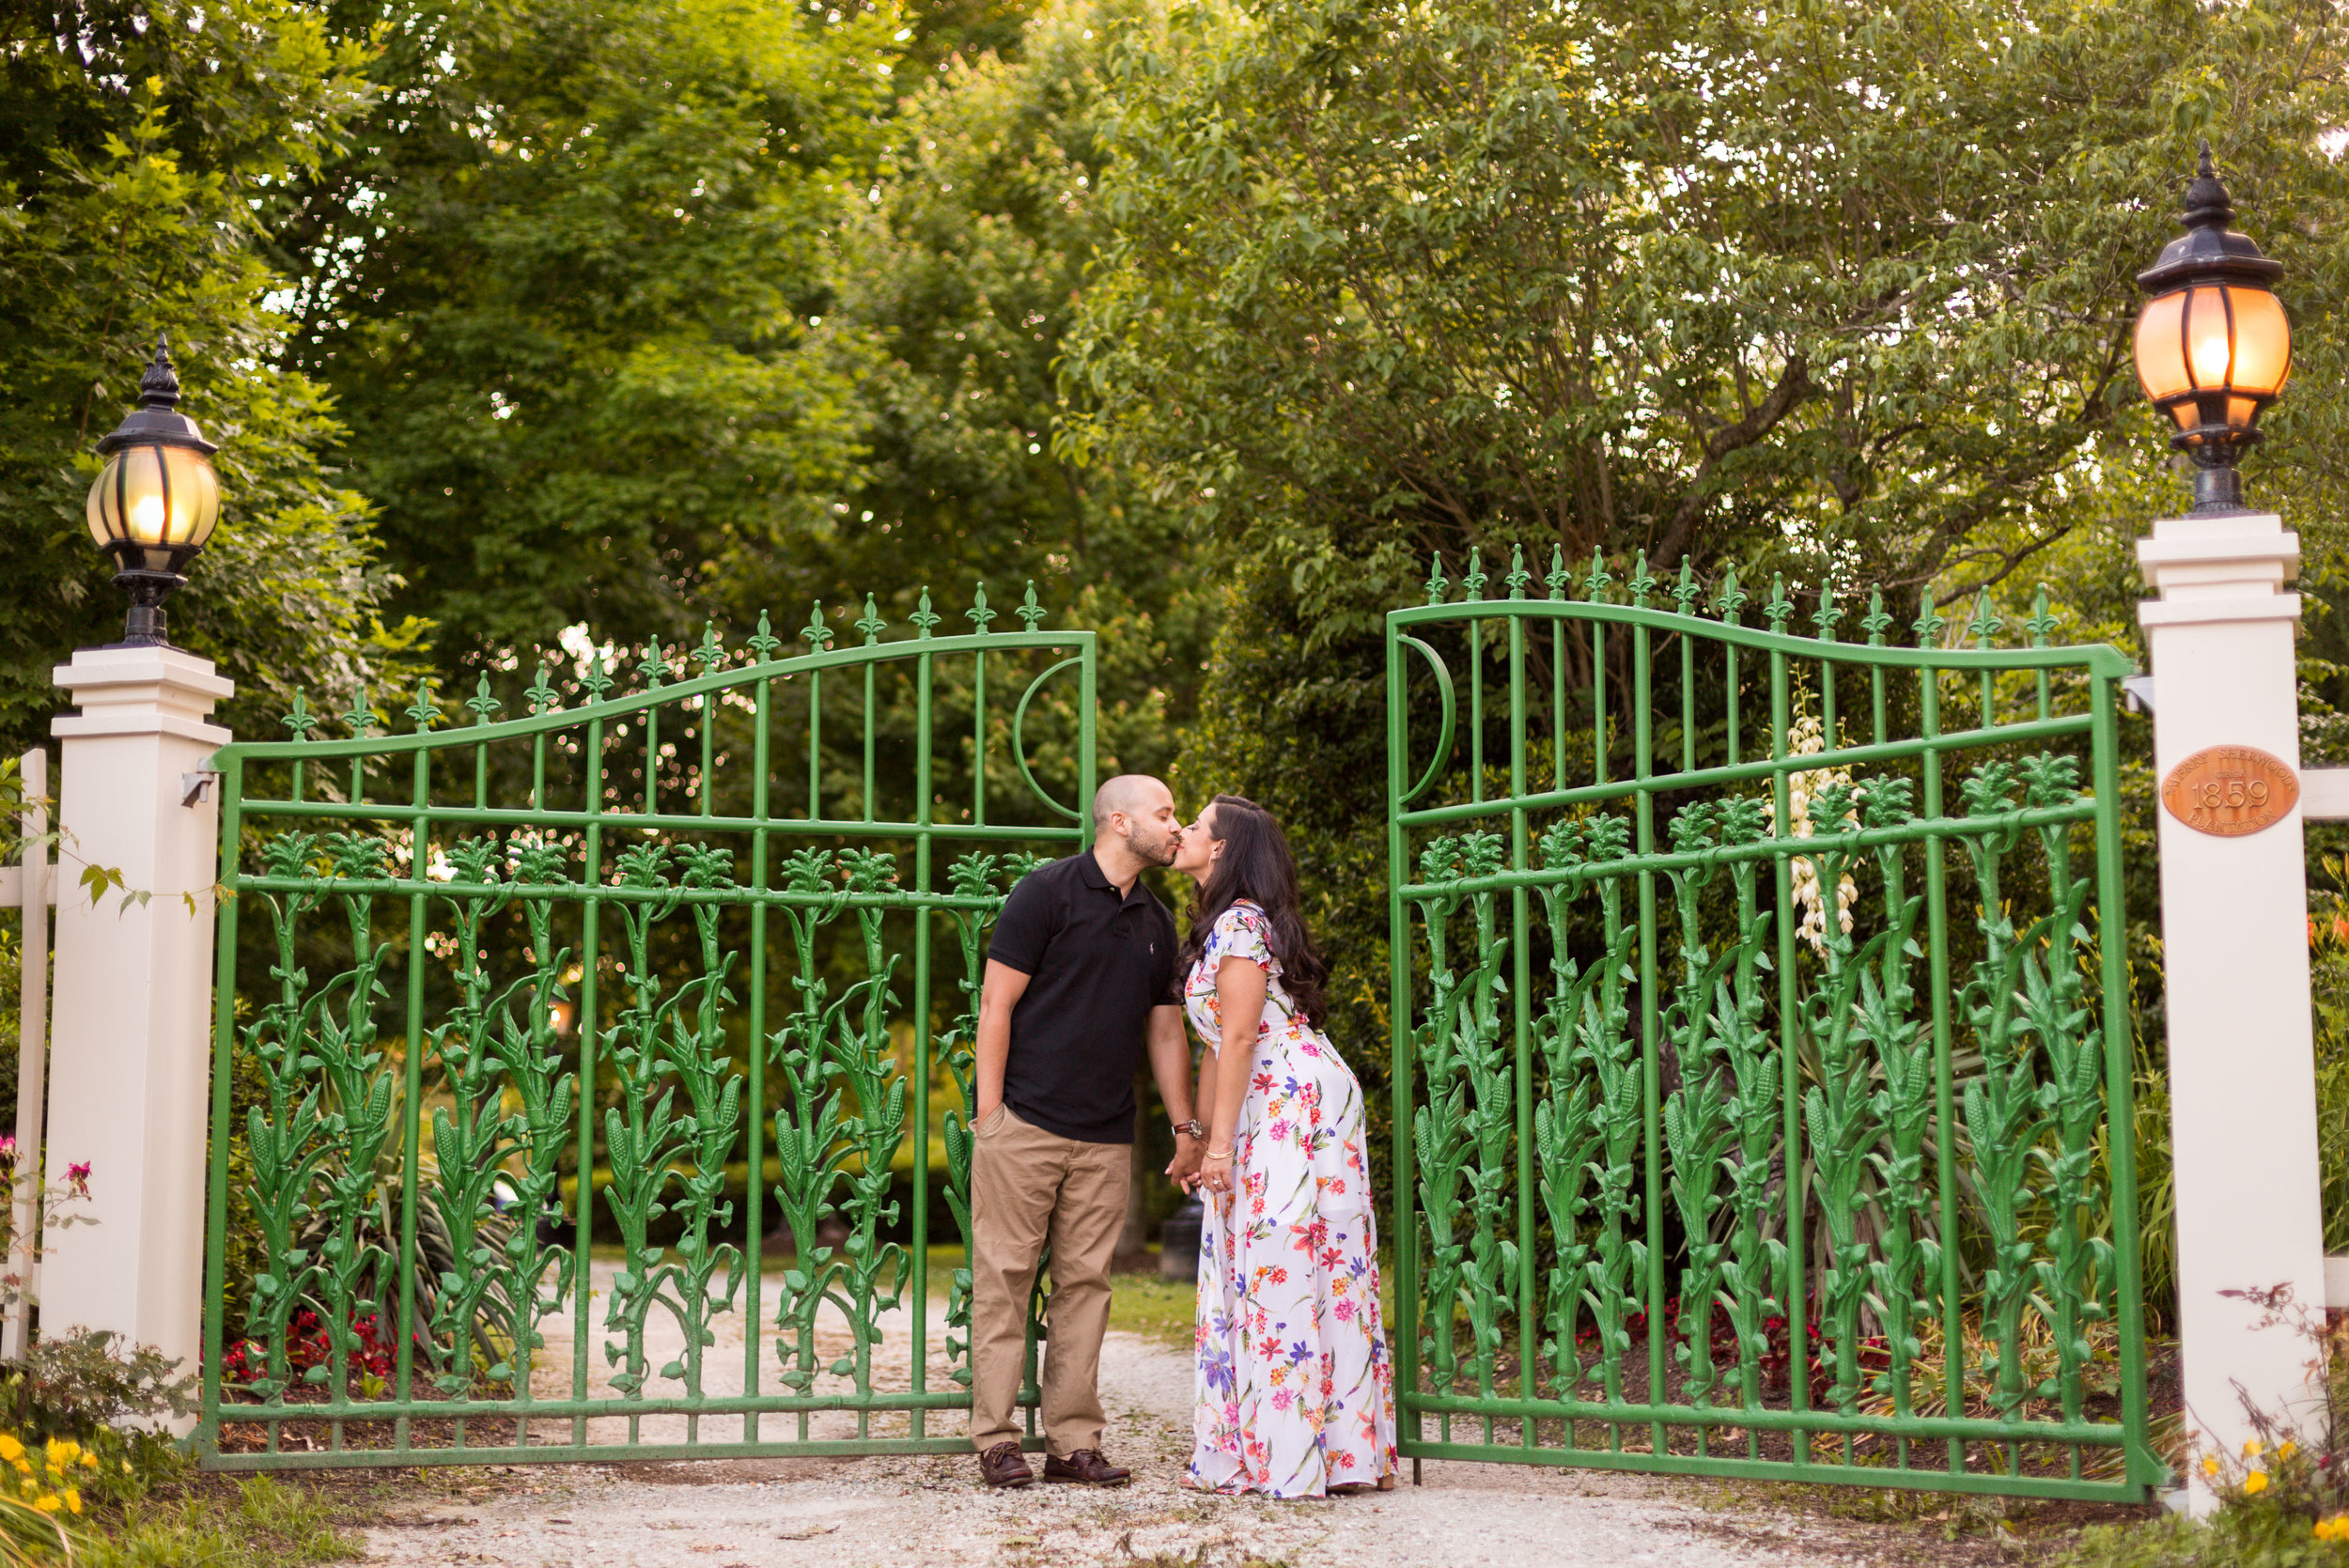 An engaged couple share a kiss in front of the green metal gate leading to the historic Merry Sherwood wedding venue near Ocean City Maryland.